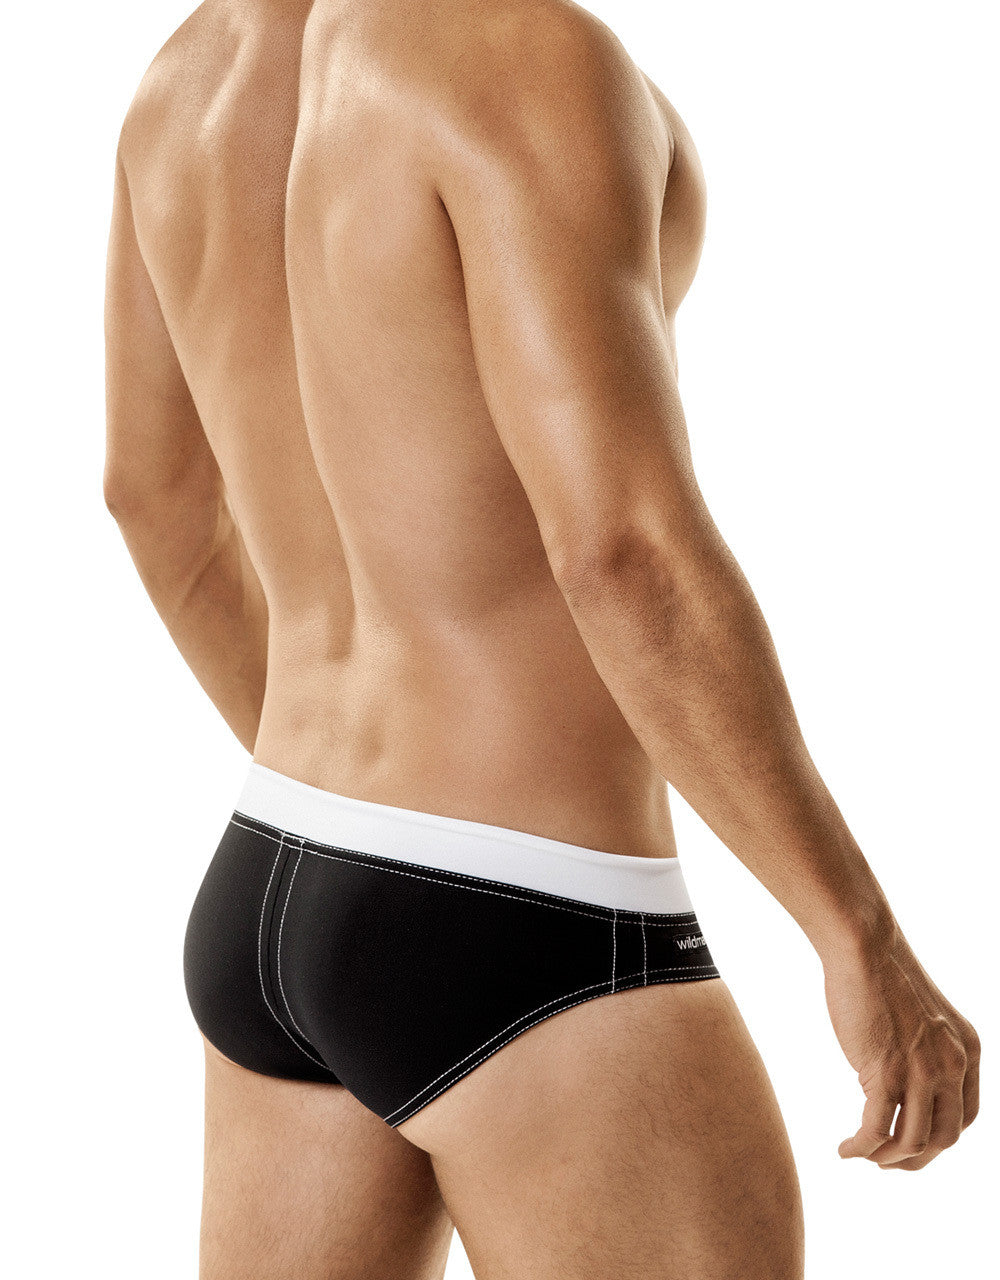 WildmanT Banned Swim w/Ball Lifter® Cock-Ring Black - Big Penis Underwear, WildmanT - WildmanT